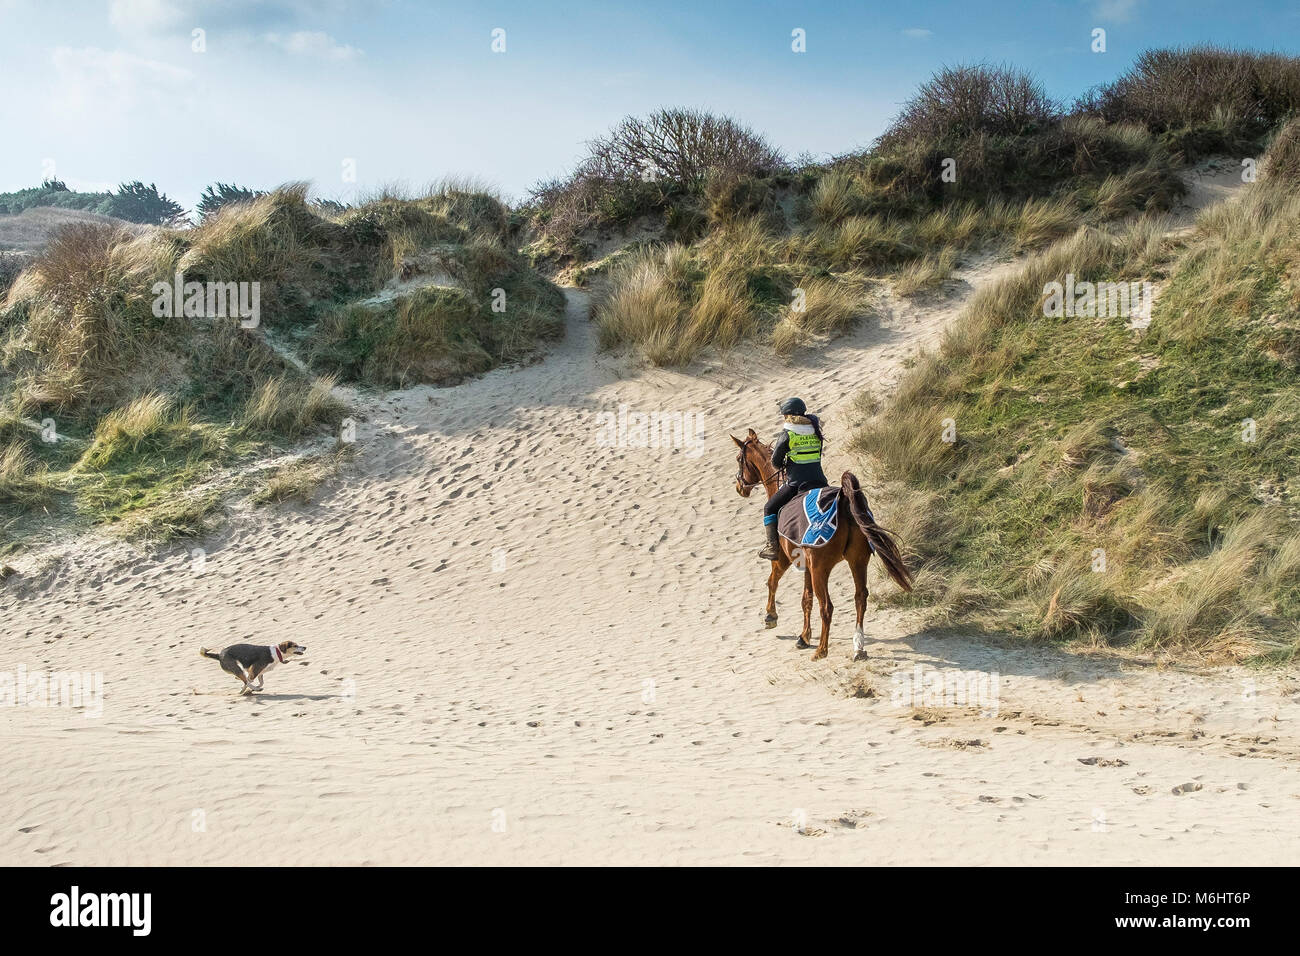 An off the lead dog running at a horse rider in the sand dunes at Crantock in Newquay Cornwall. - Stock Image